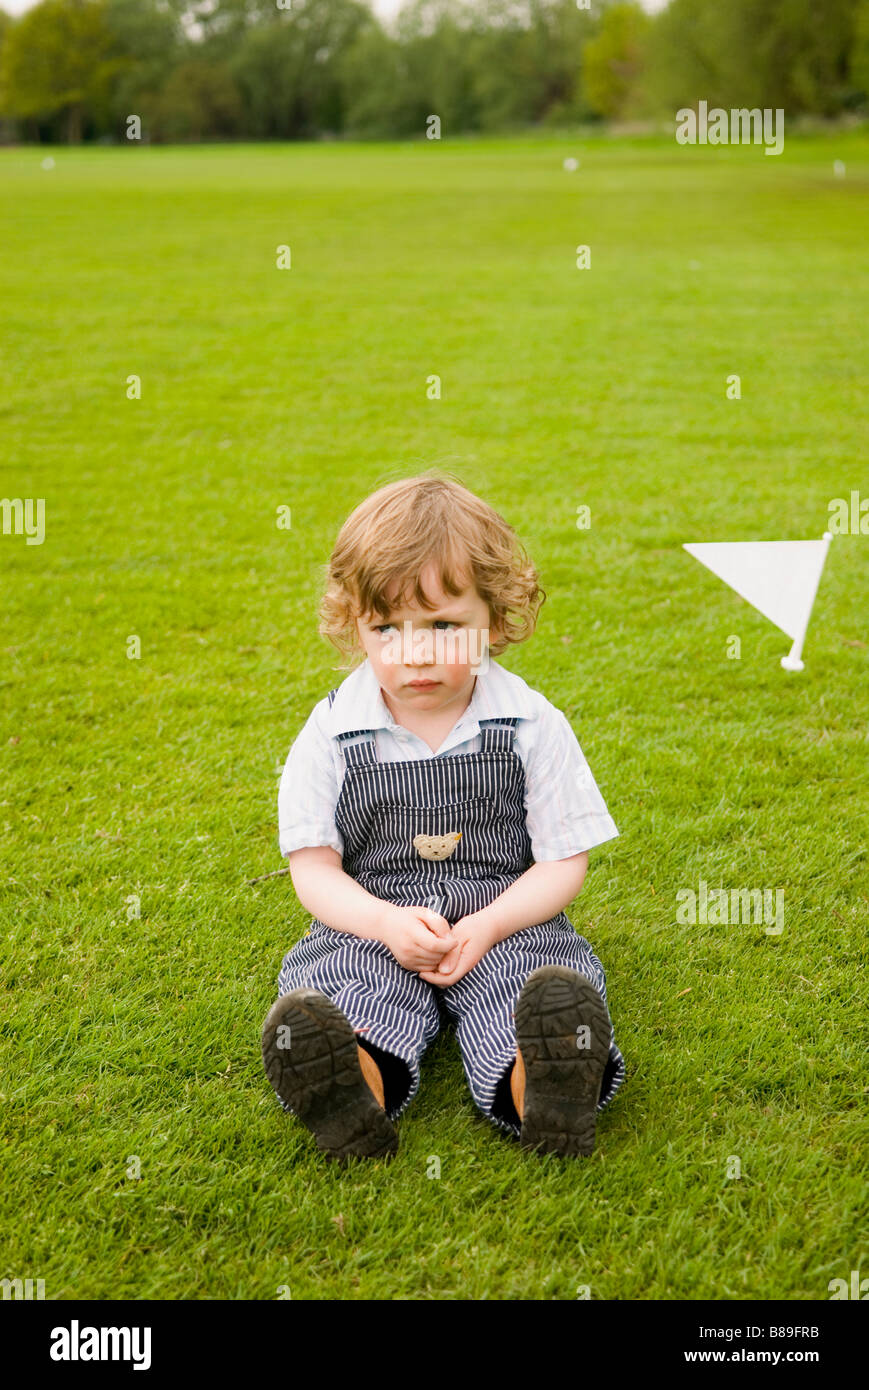 Young boy sitting on lawn - Stock Image